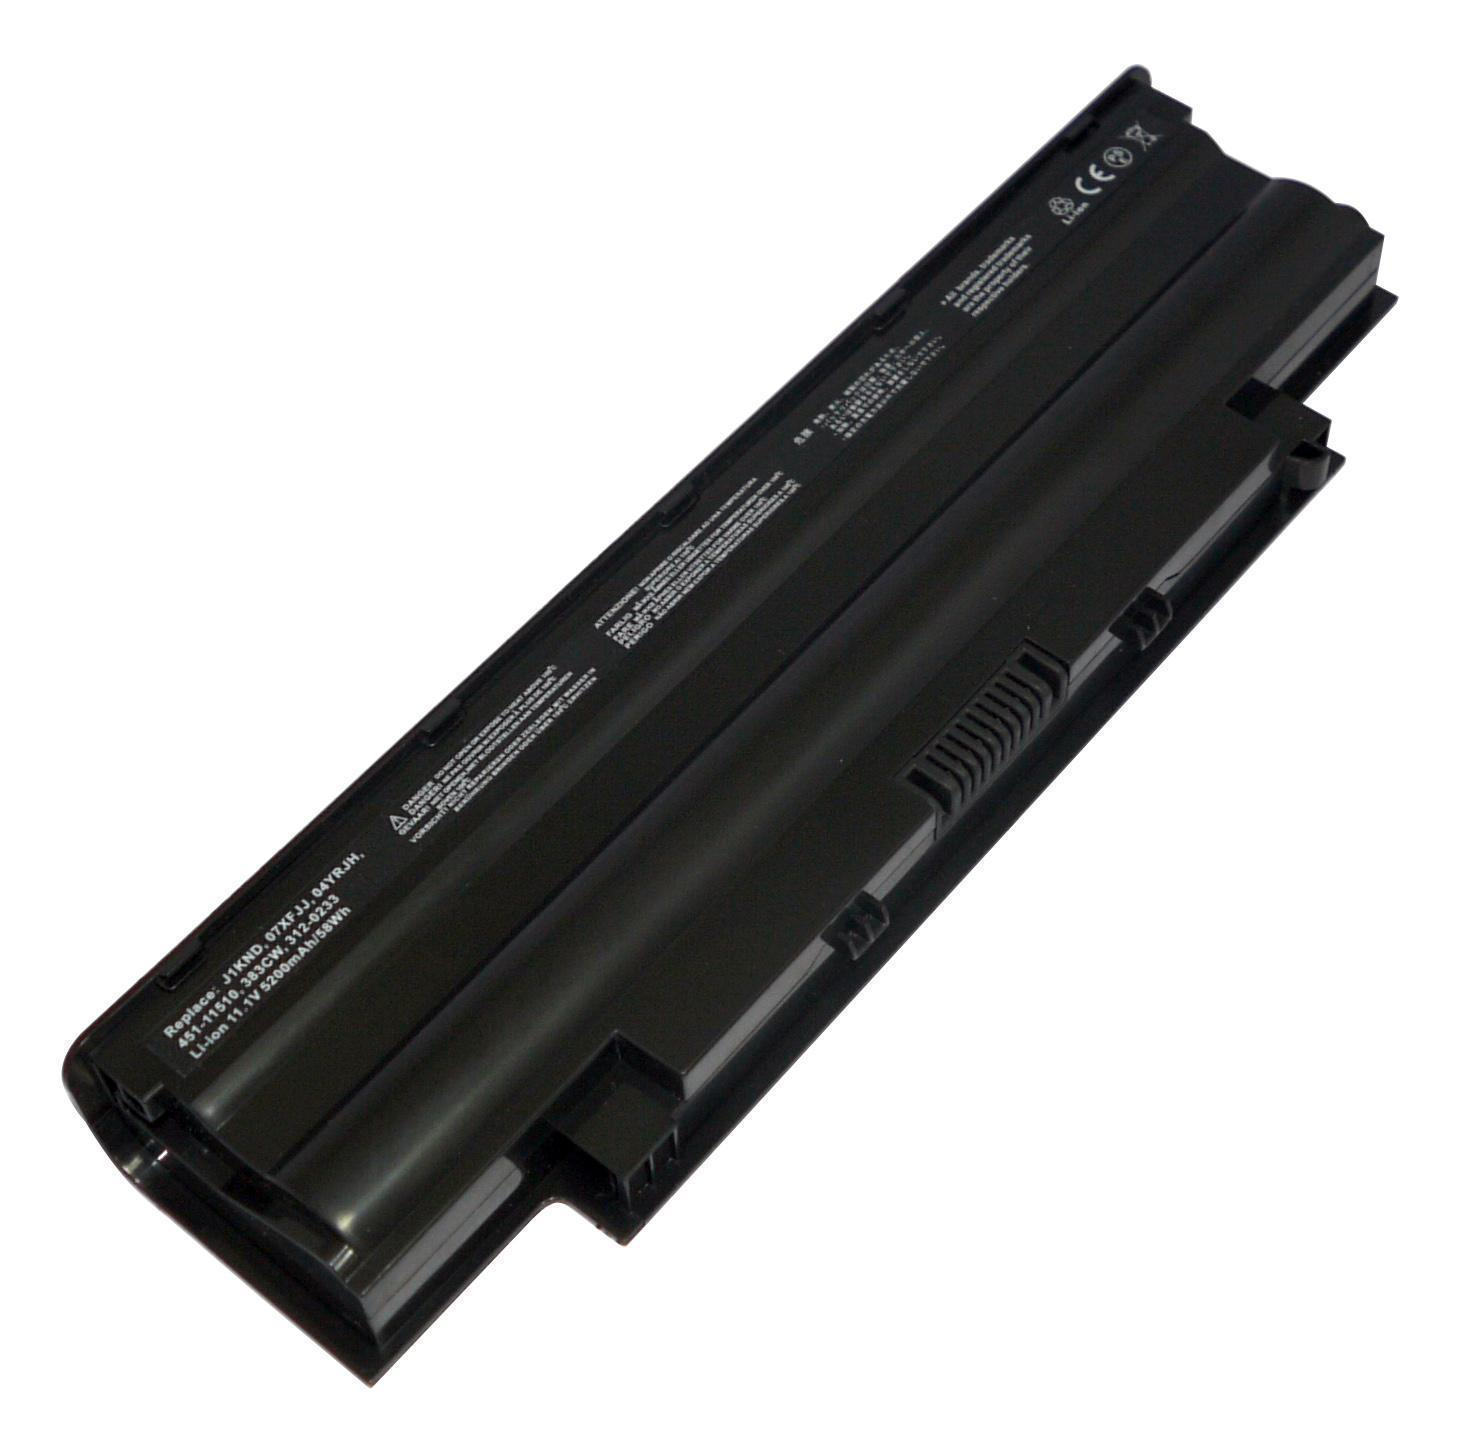 Pin Dell Inspiron 17R N7010 N7010D N7010R N7110 N5050 N5110 J1KND Battery